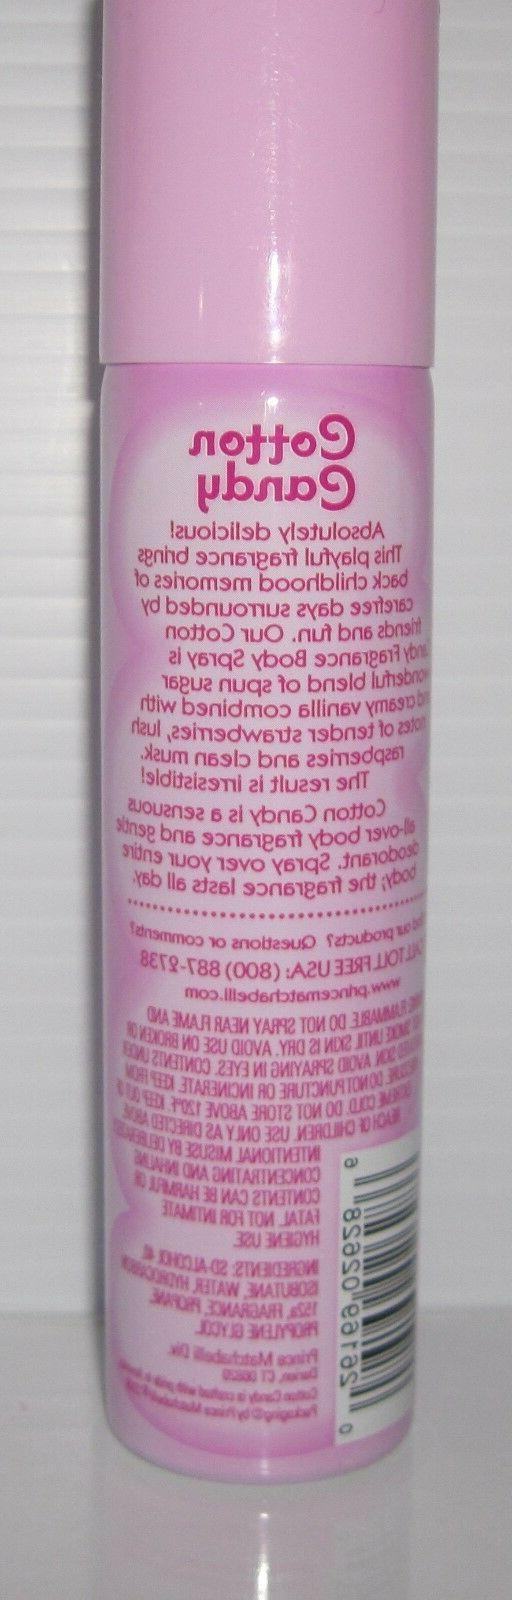 Prince Matchabelli Cotton Candy Fragrance Deodorant